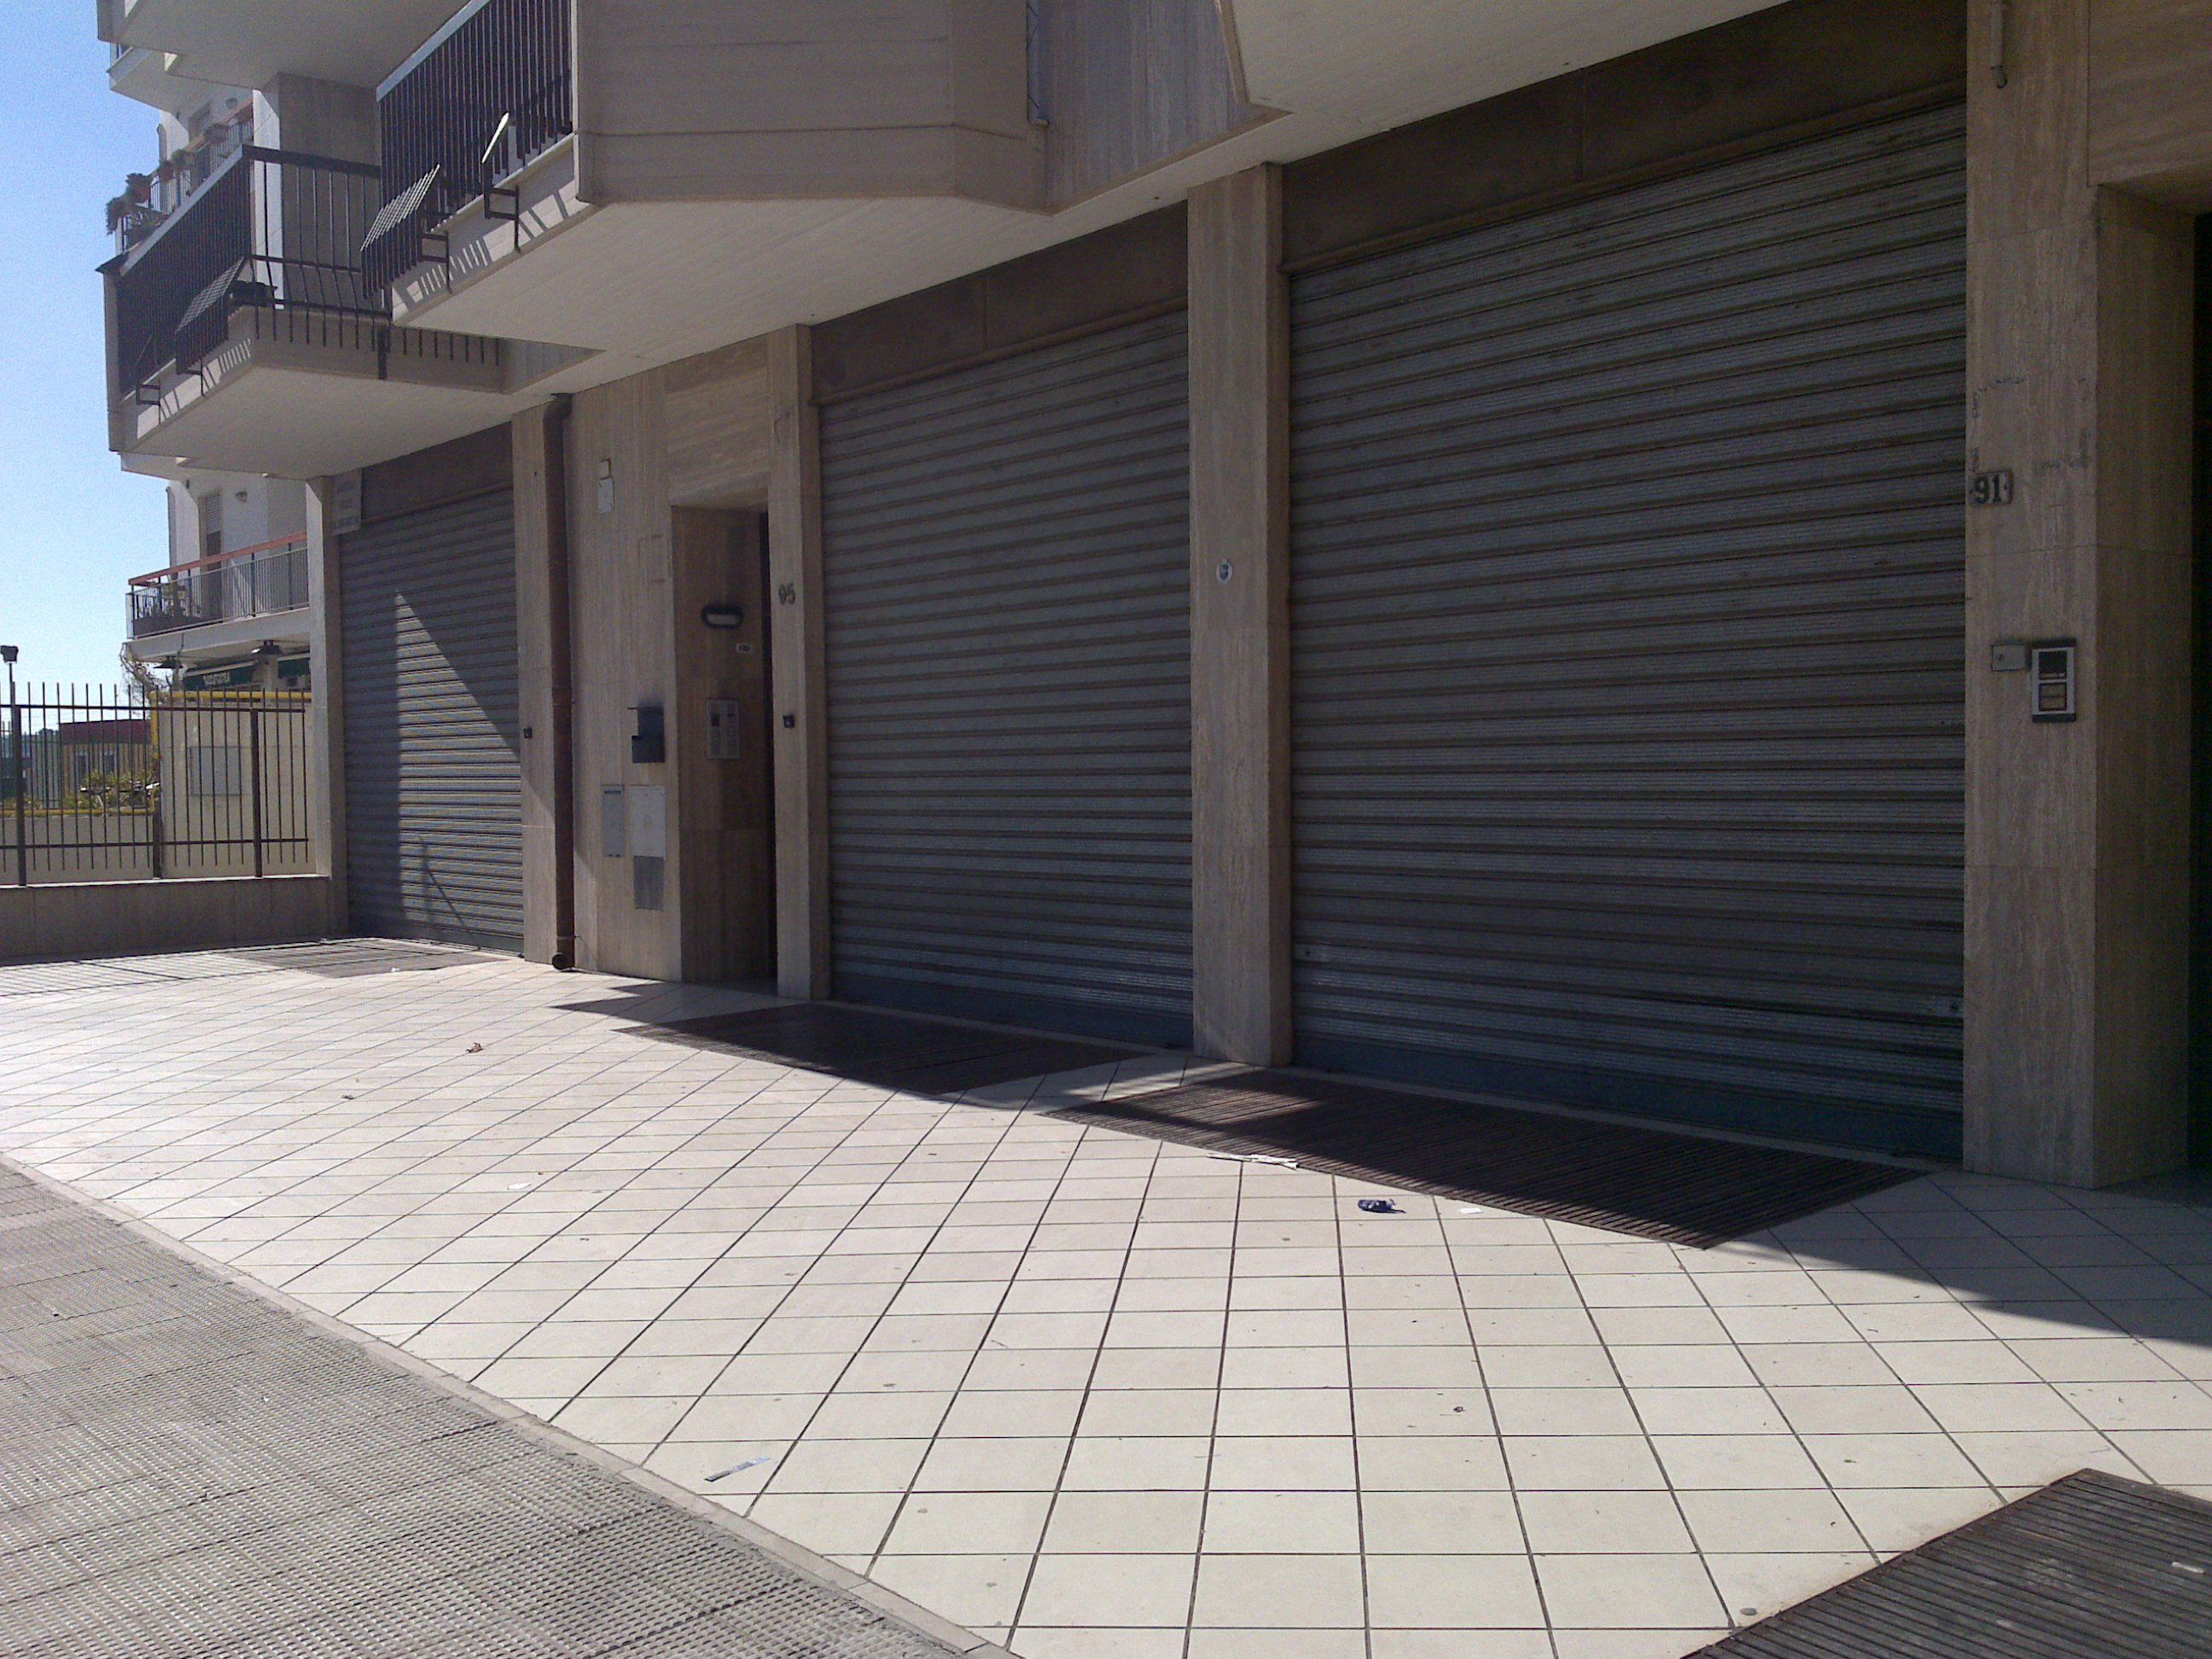 LOCALE COMMERCIALE – VIA FLEMING – ANDRIA